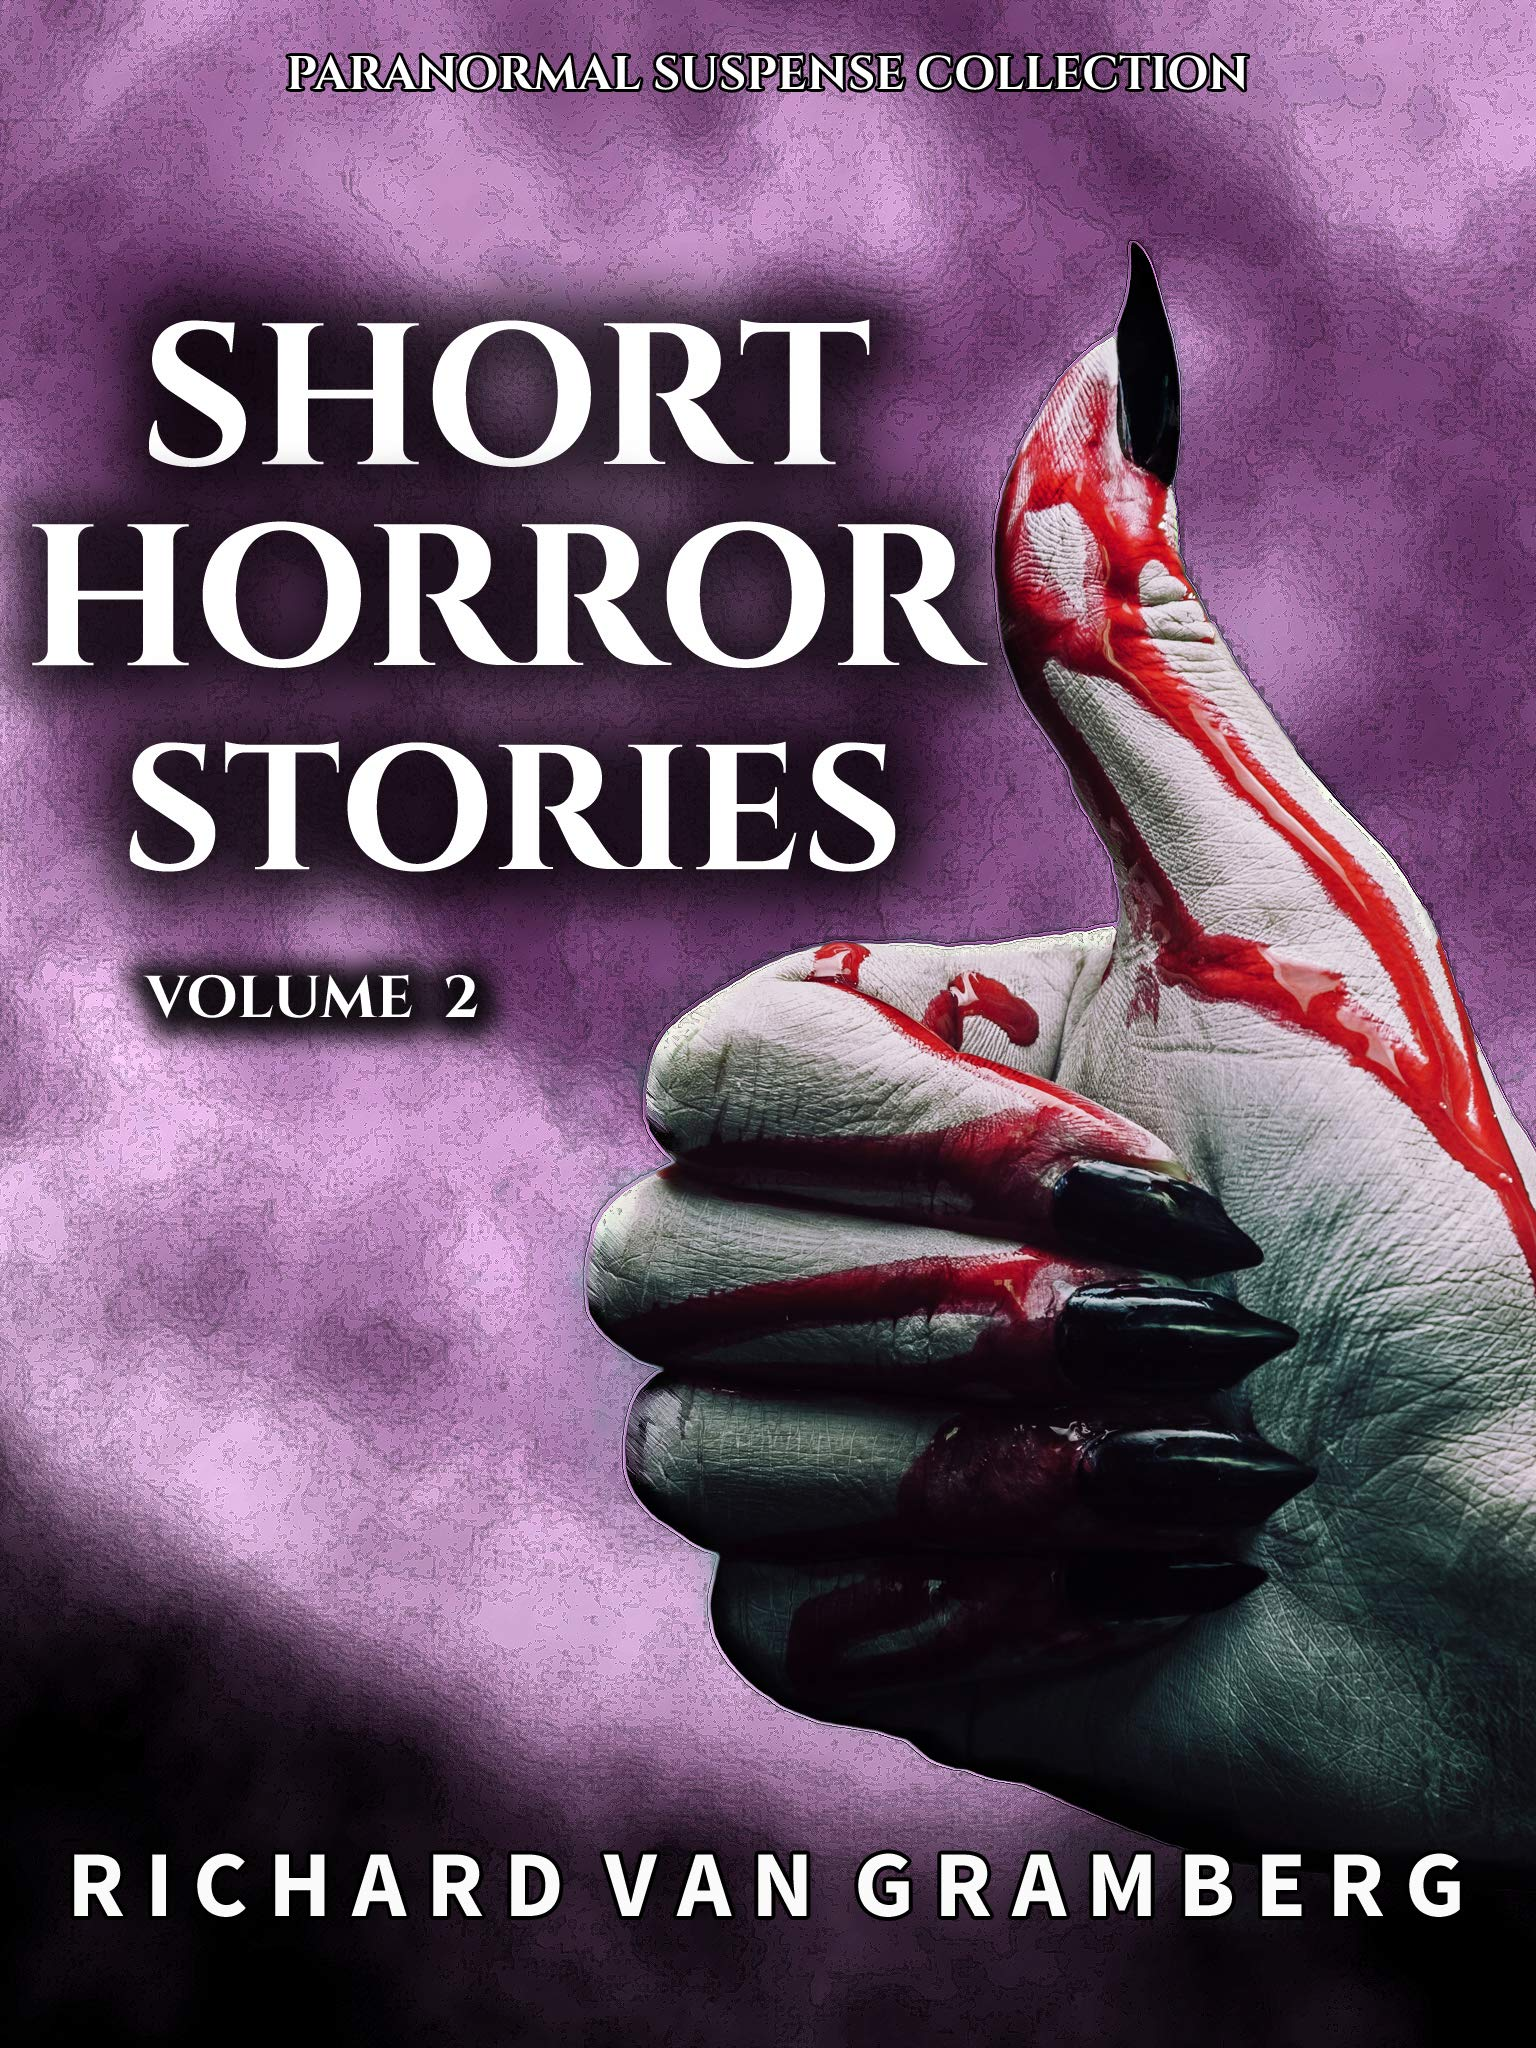 Short Horror Stories Volume 2: Terrifying Poltergeists, Creatures, Demons, Occult Rituals and more Supernatural Tales (Paranormal Suspense Collection)